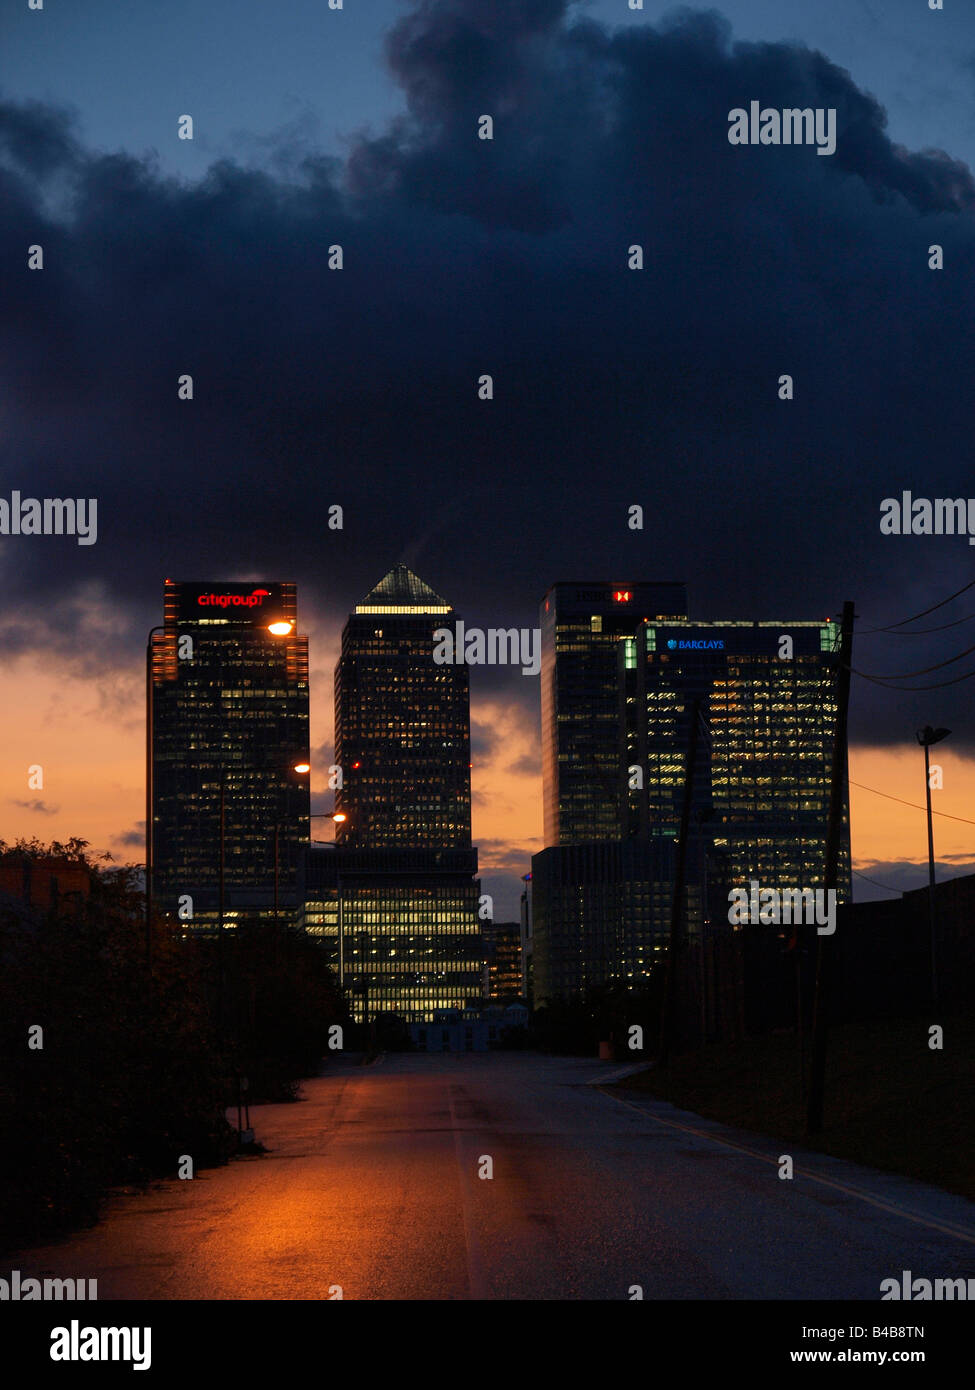 Canary Wharf Bank towers bei Nacht vertikale Docklands-London-UK Stockbild